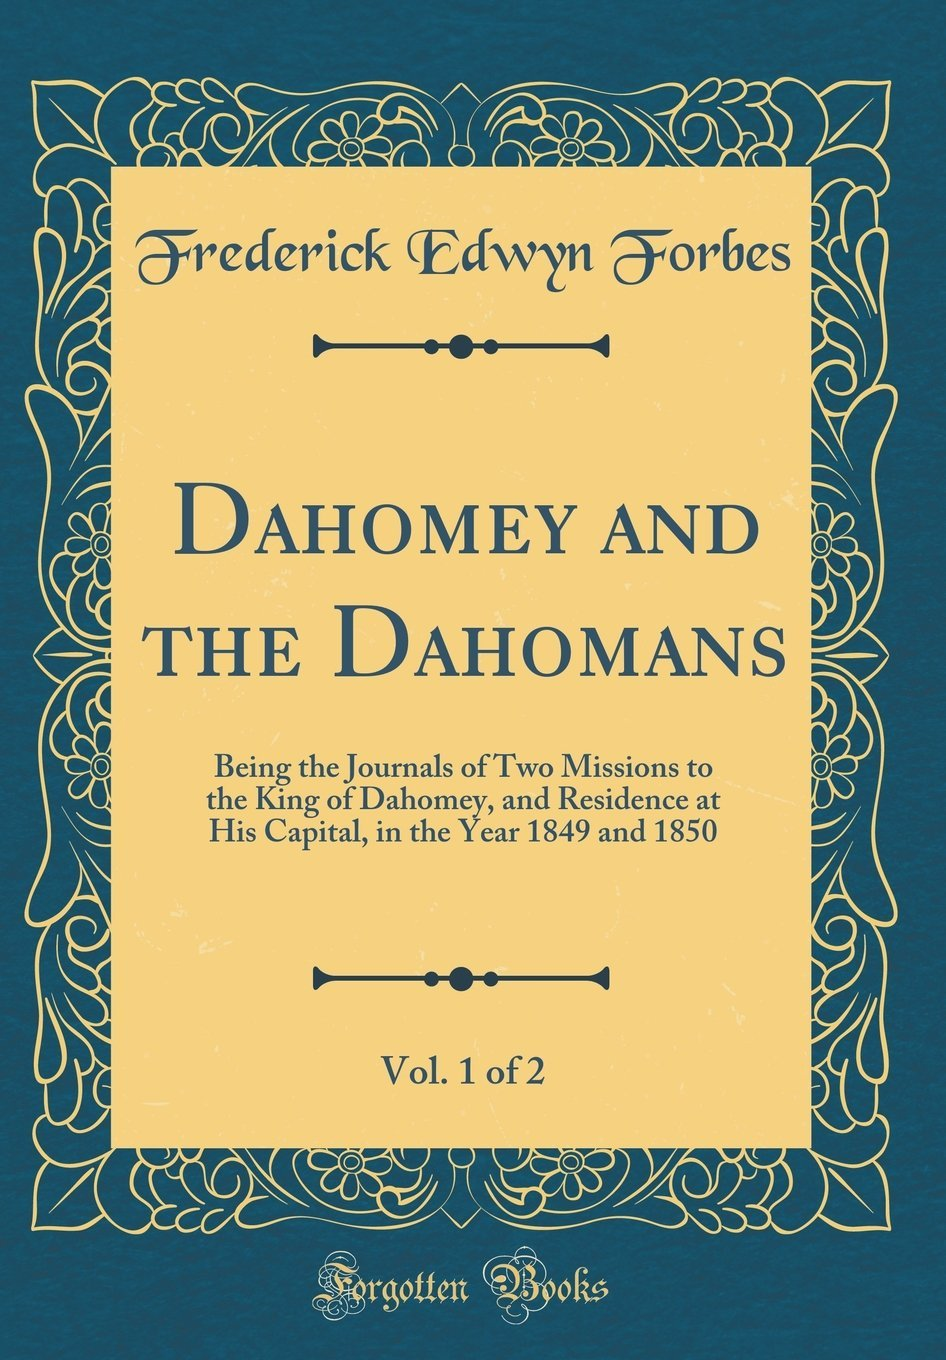 Download Dahomey and the Dahomans, Vol. 1 of 2: Being the Journals of Two Missions to the King of Dahomey, and Residence at His Capital, in the Year 1849 and 1850 (Classic Reprint) ebook